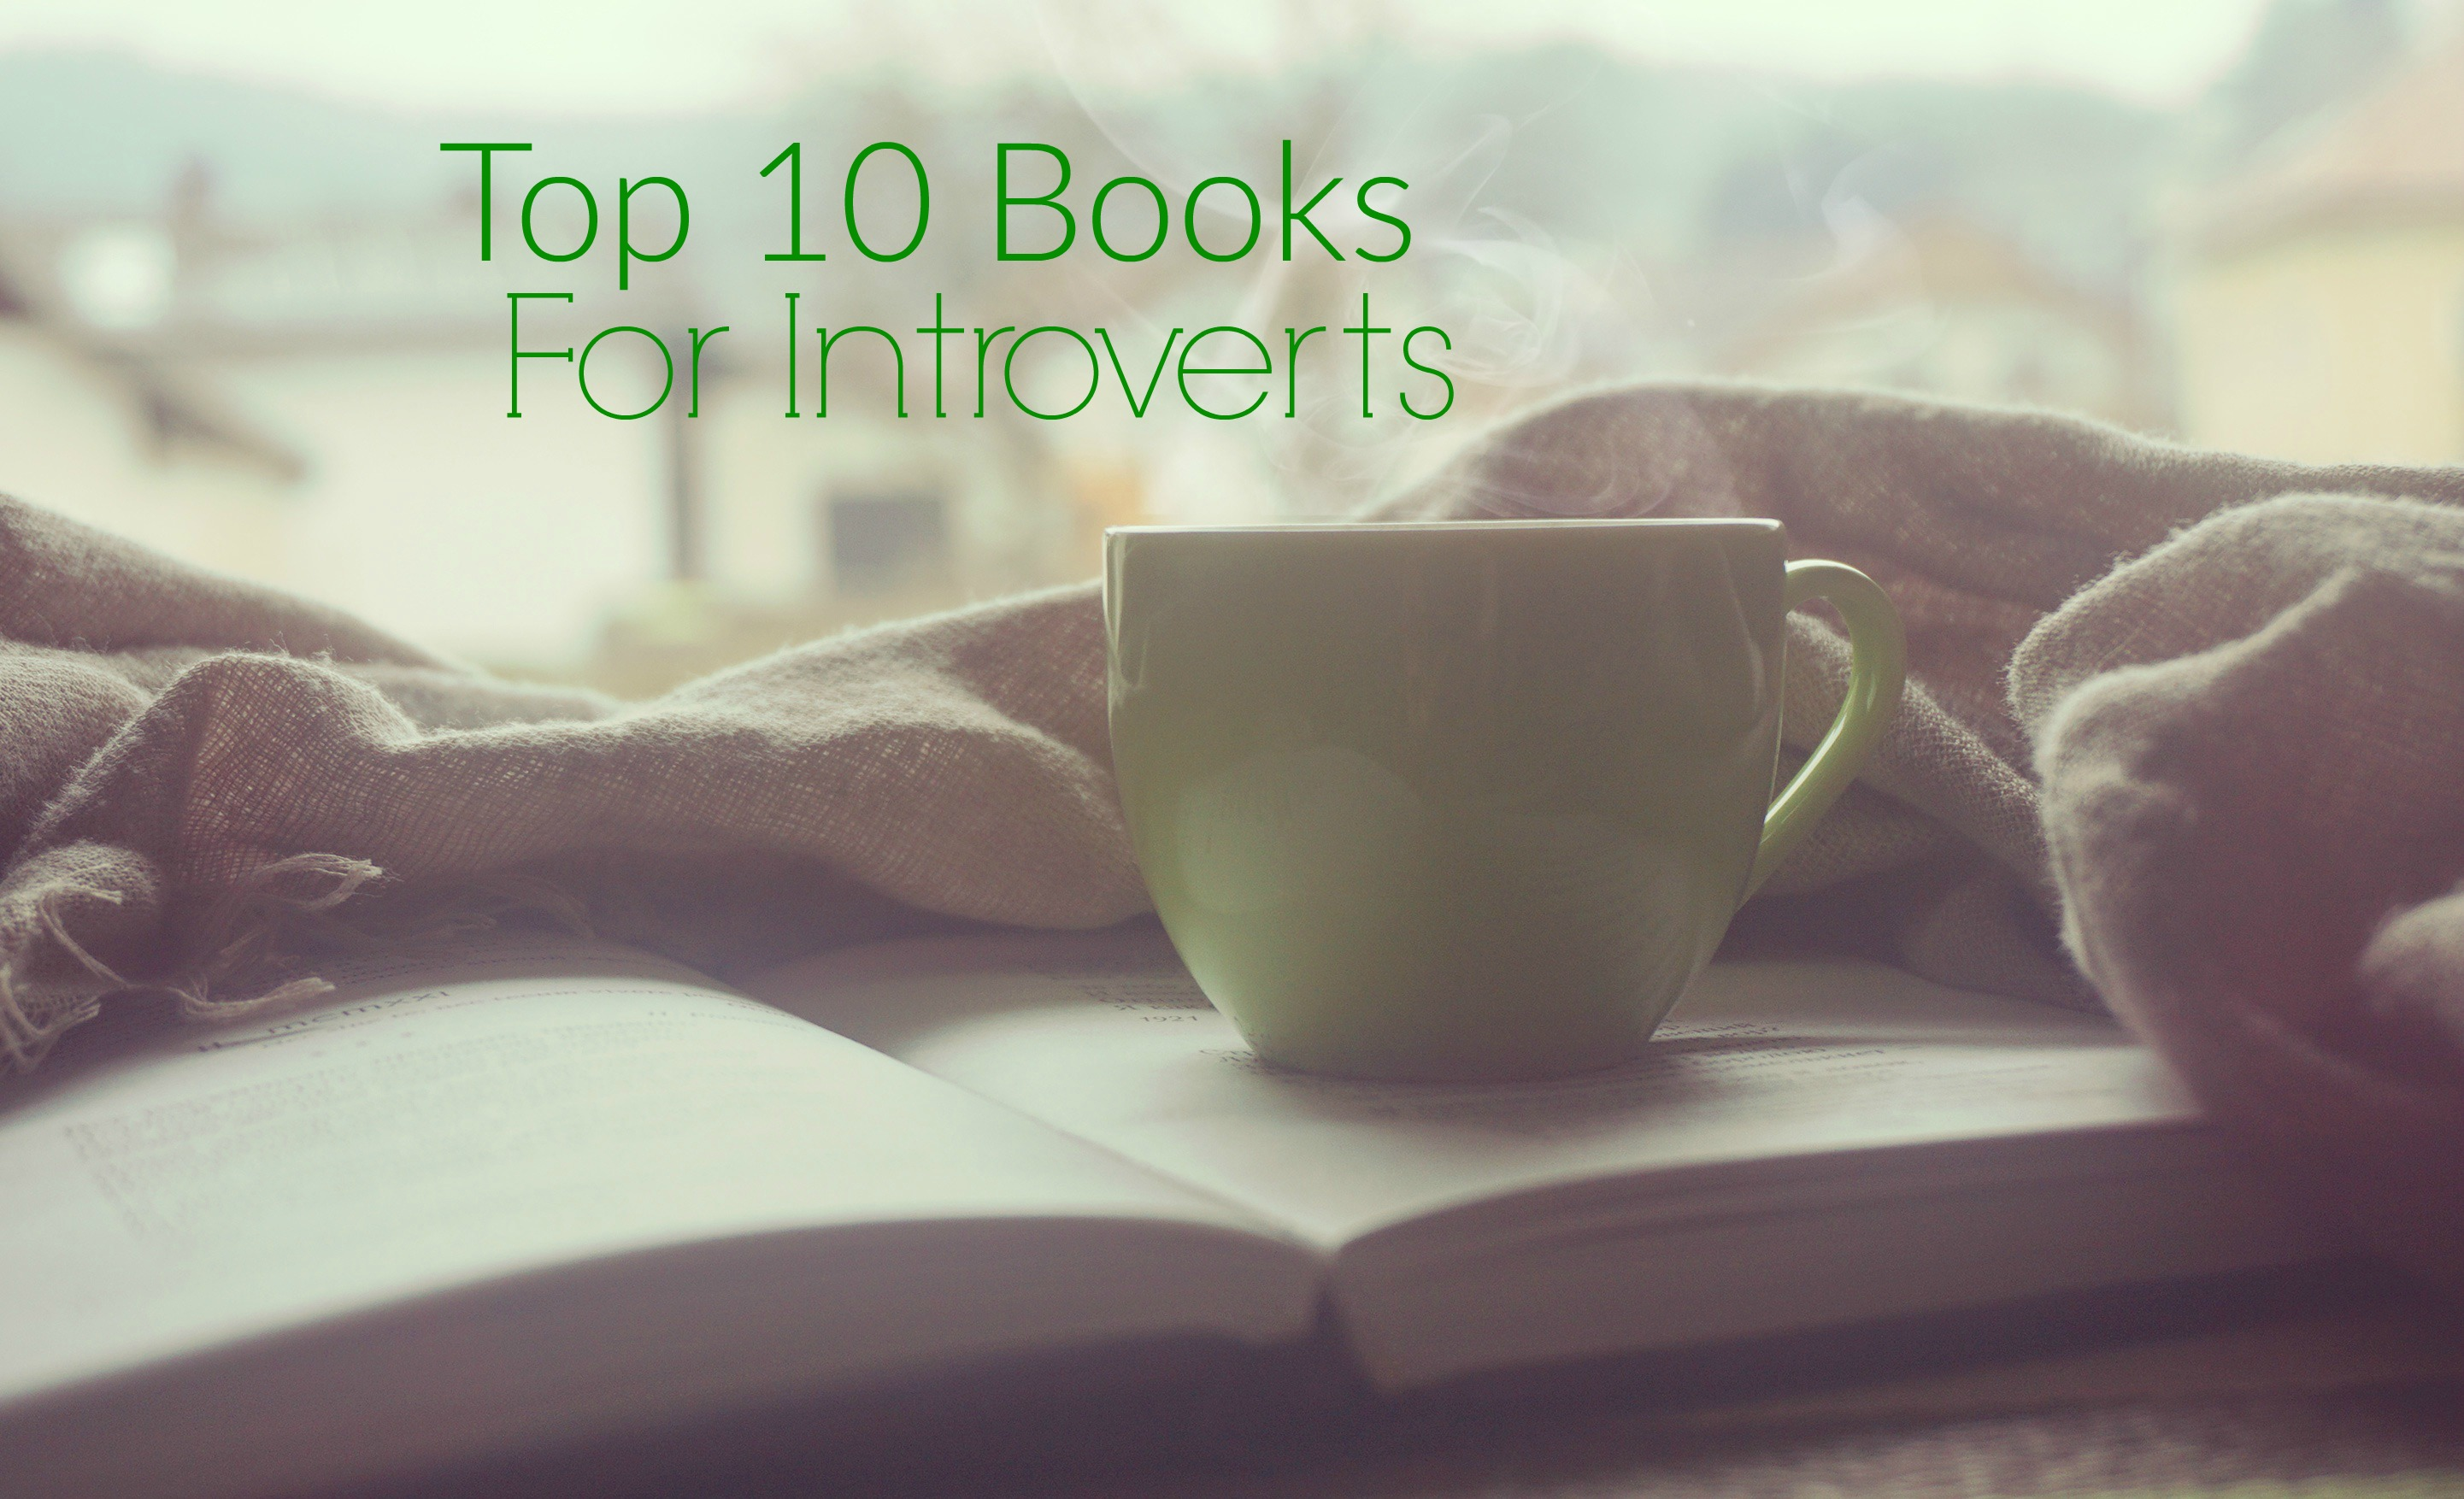 Book about introverts and extroverts dating